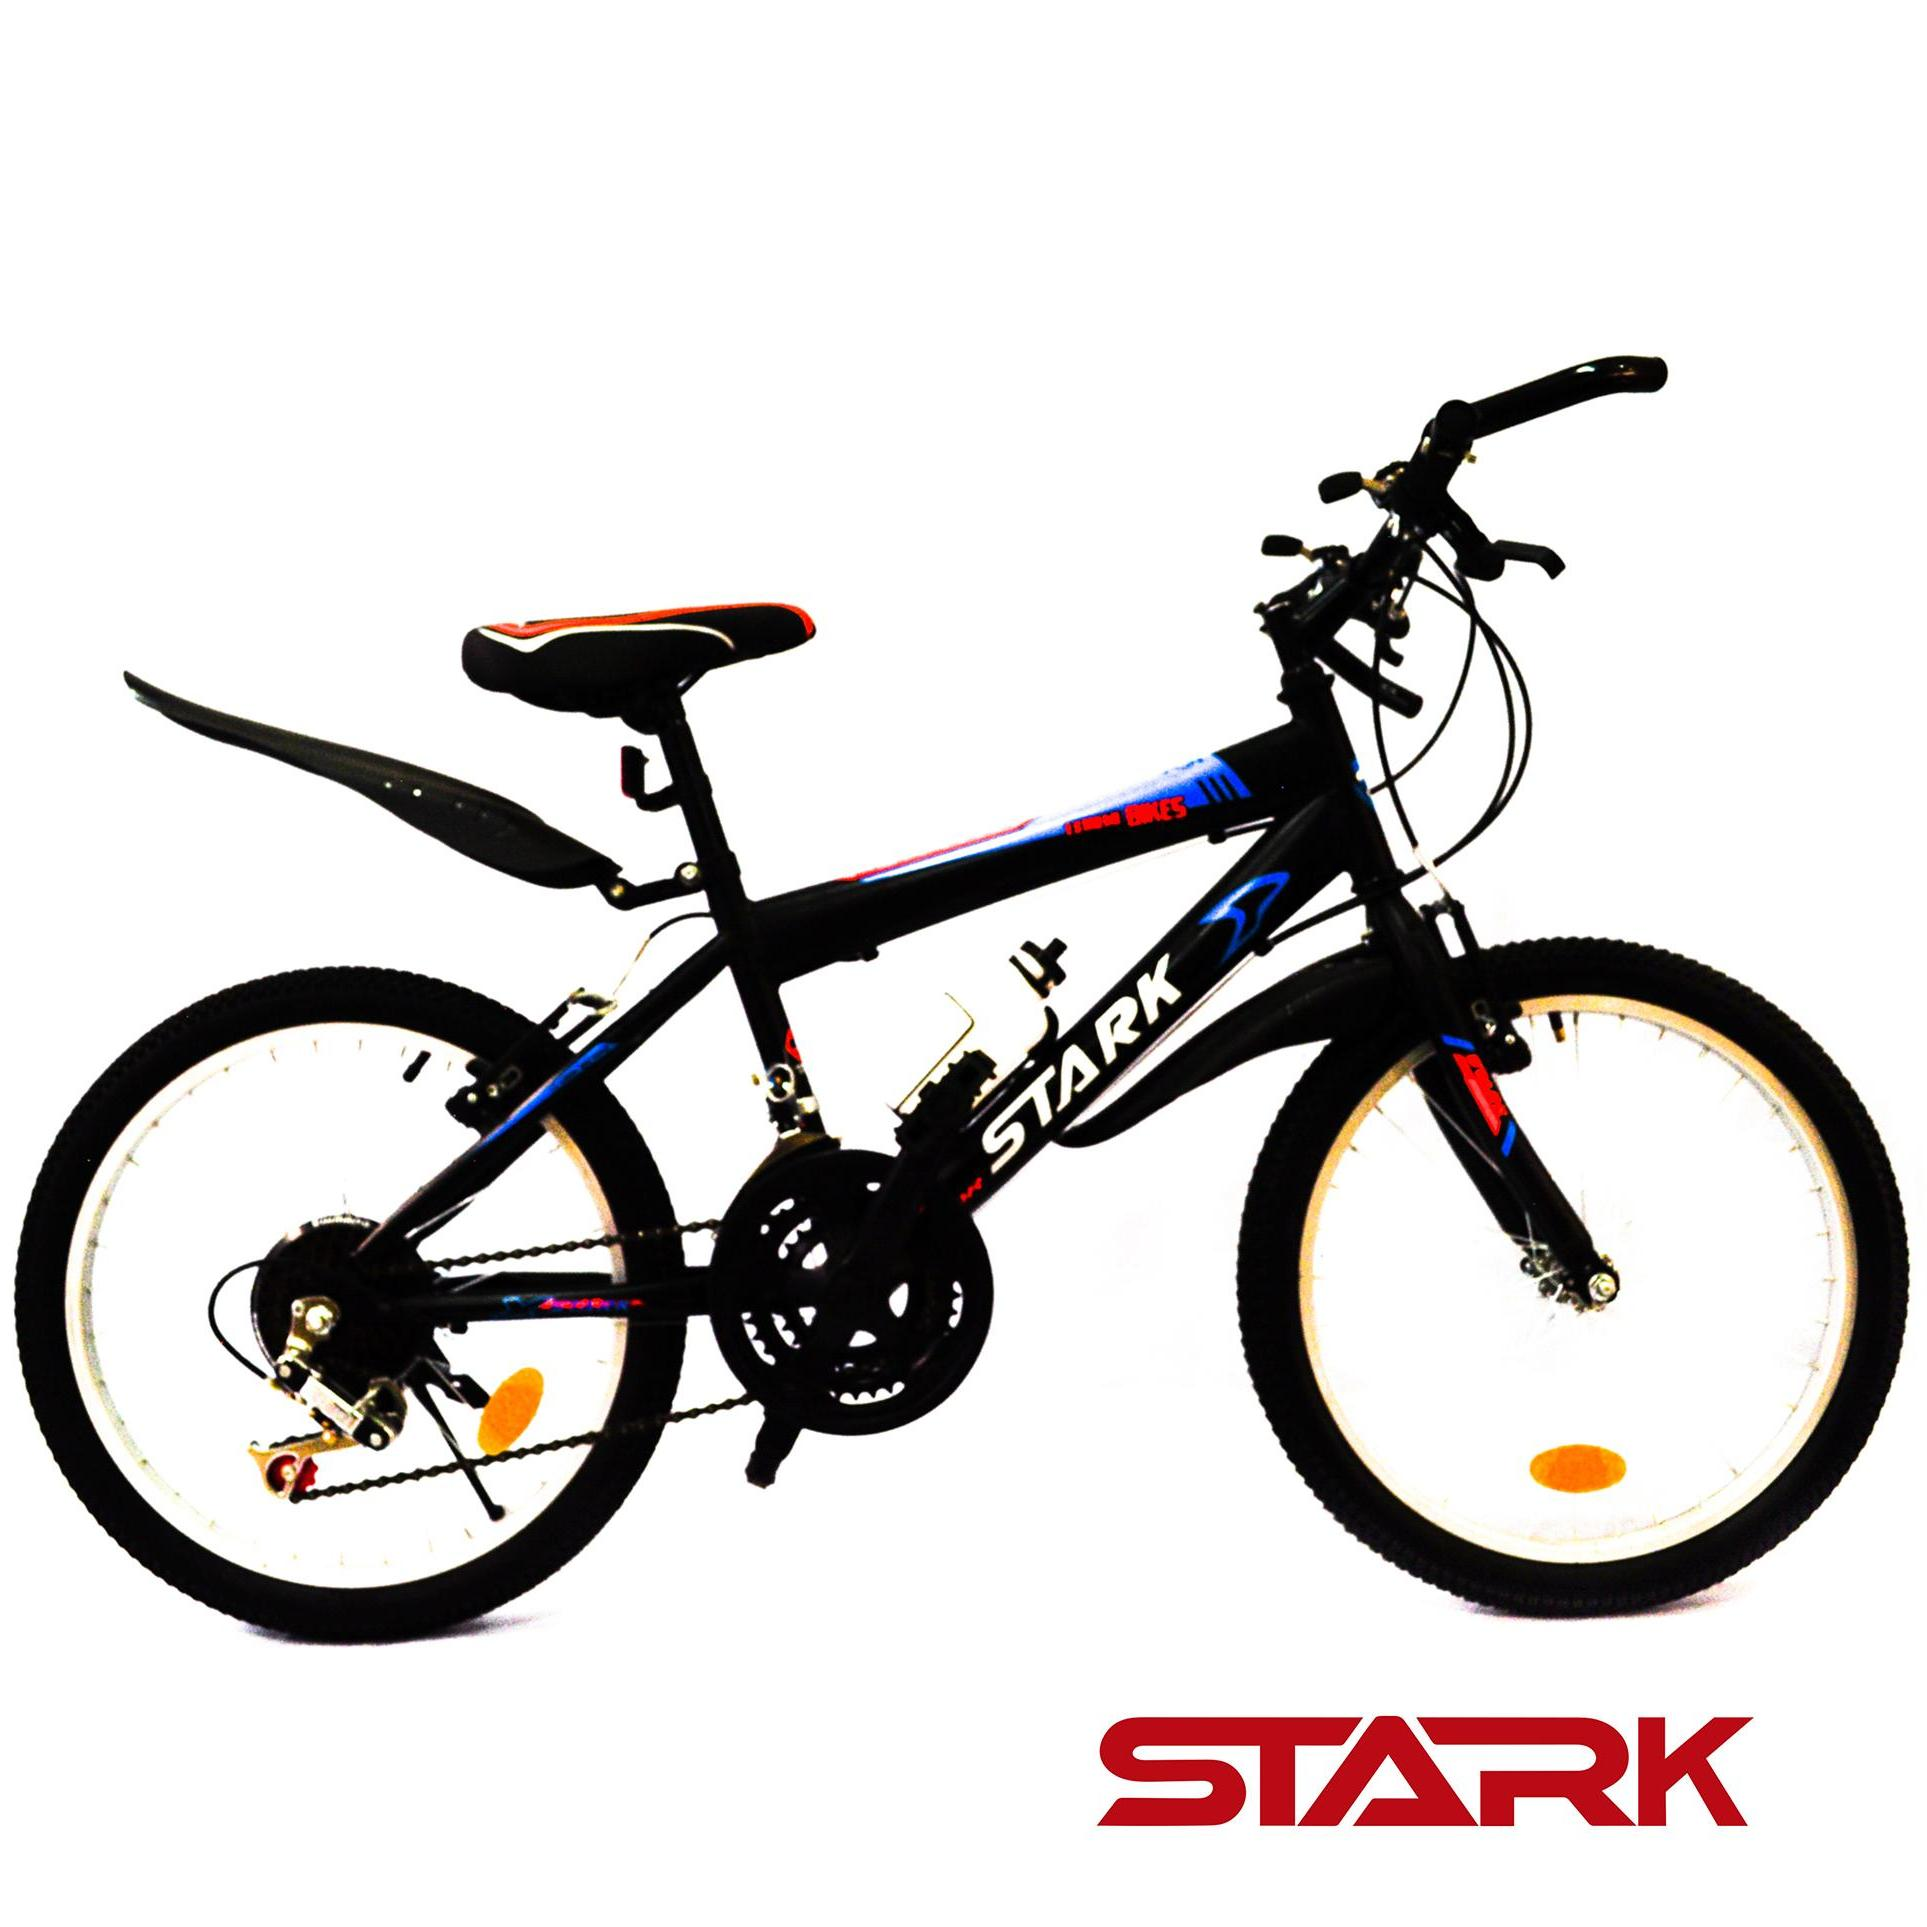 Bicycles Stark: reviews, review, features 23